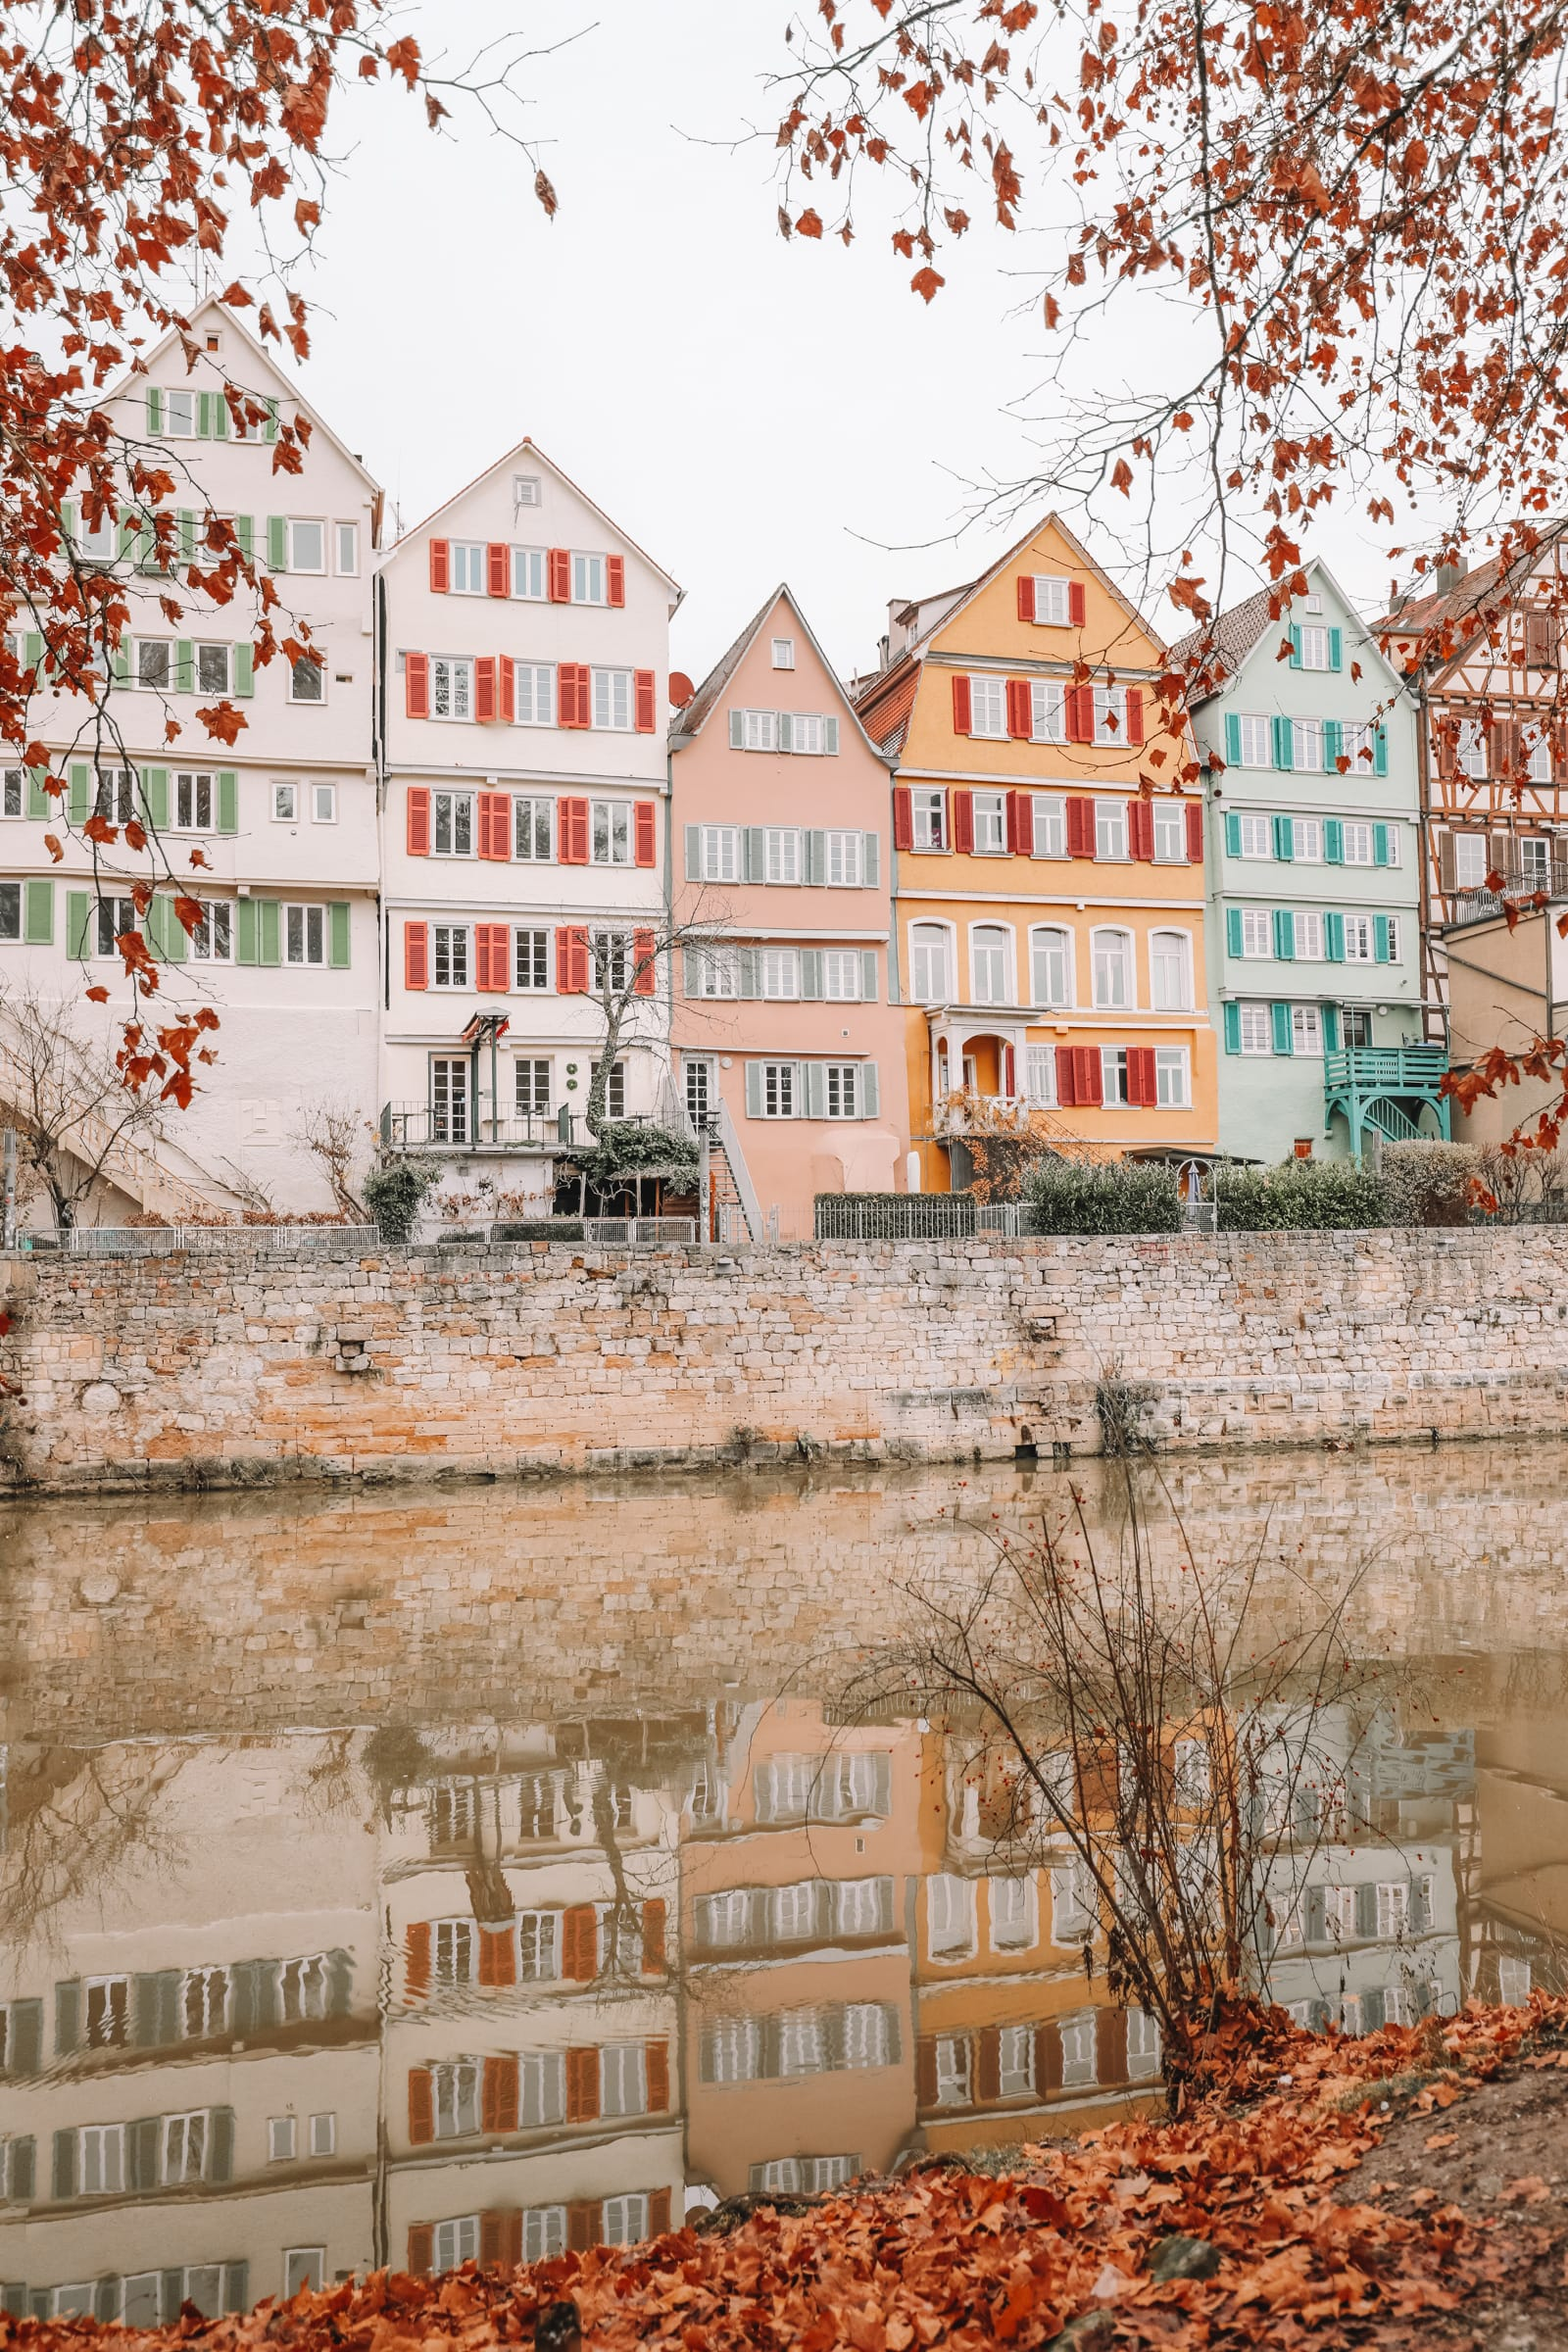 The Colourful Ancient City Of Tubingen, Germany